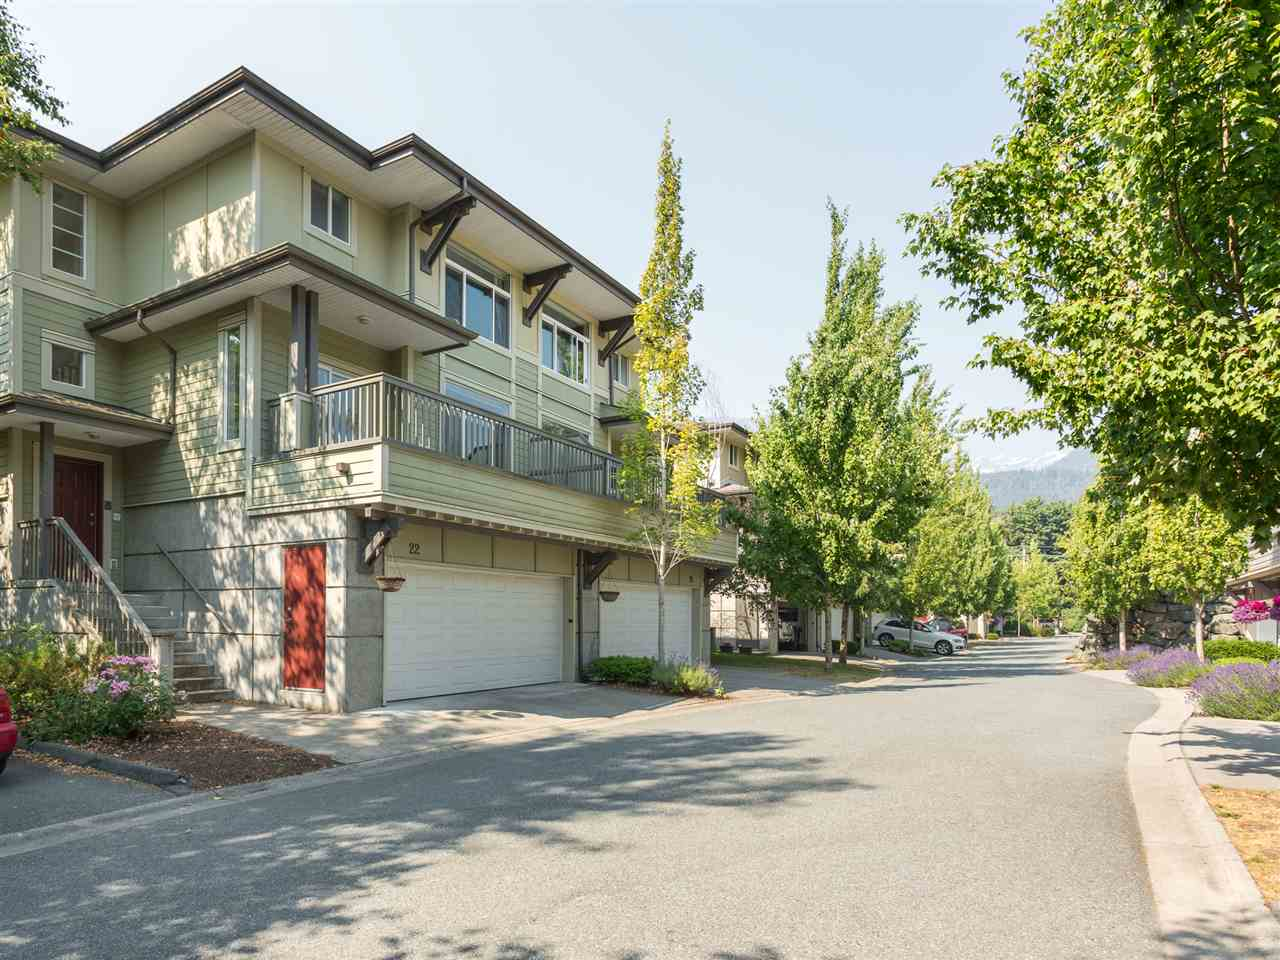 22 40632 GOVERNMENT ROAD, Squamish